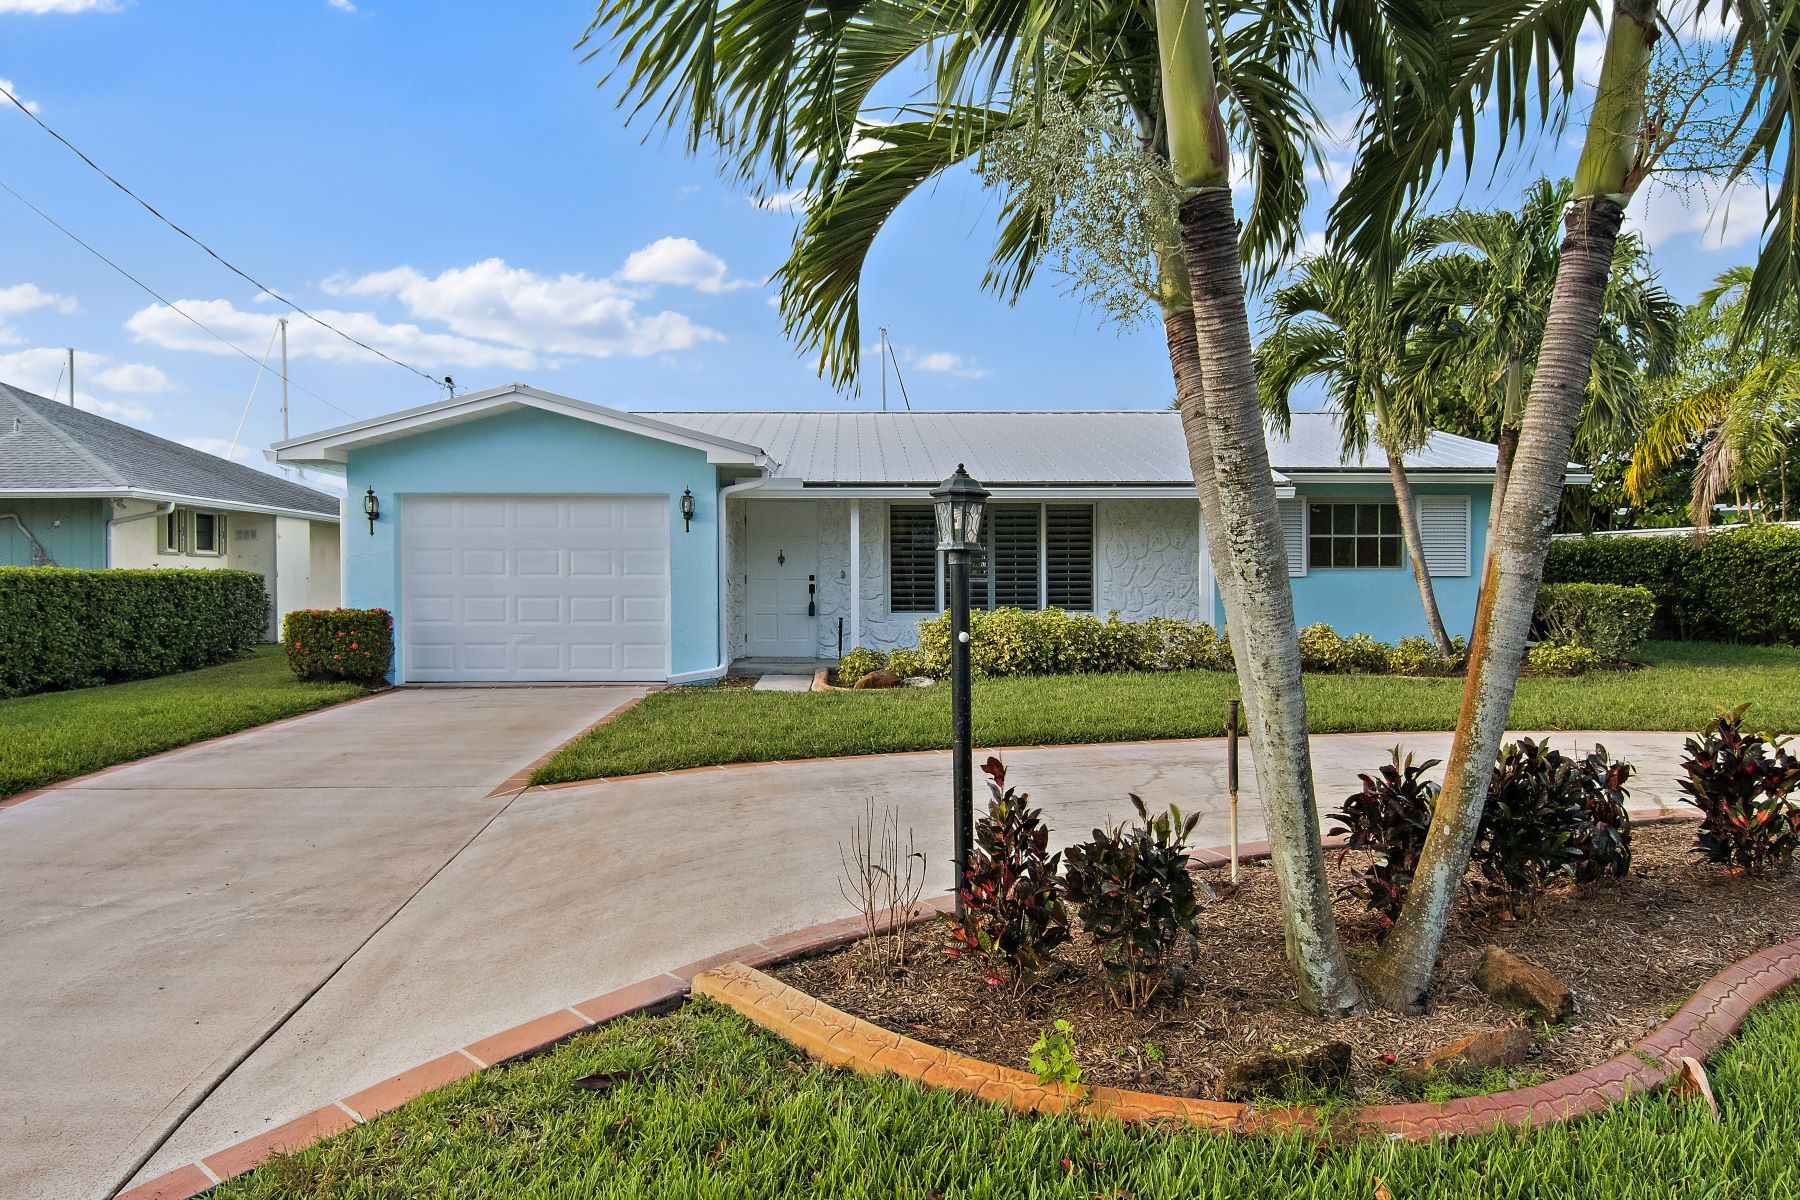 Single Family Home for Sale at 1669 Sw Dyer Point Road 1669 Sw Dyer Point Road Palm City, Florida 34990 United States